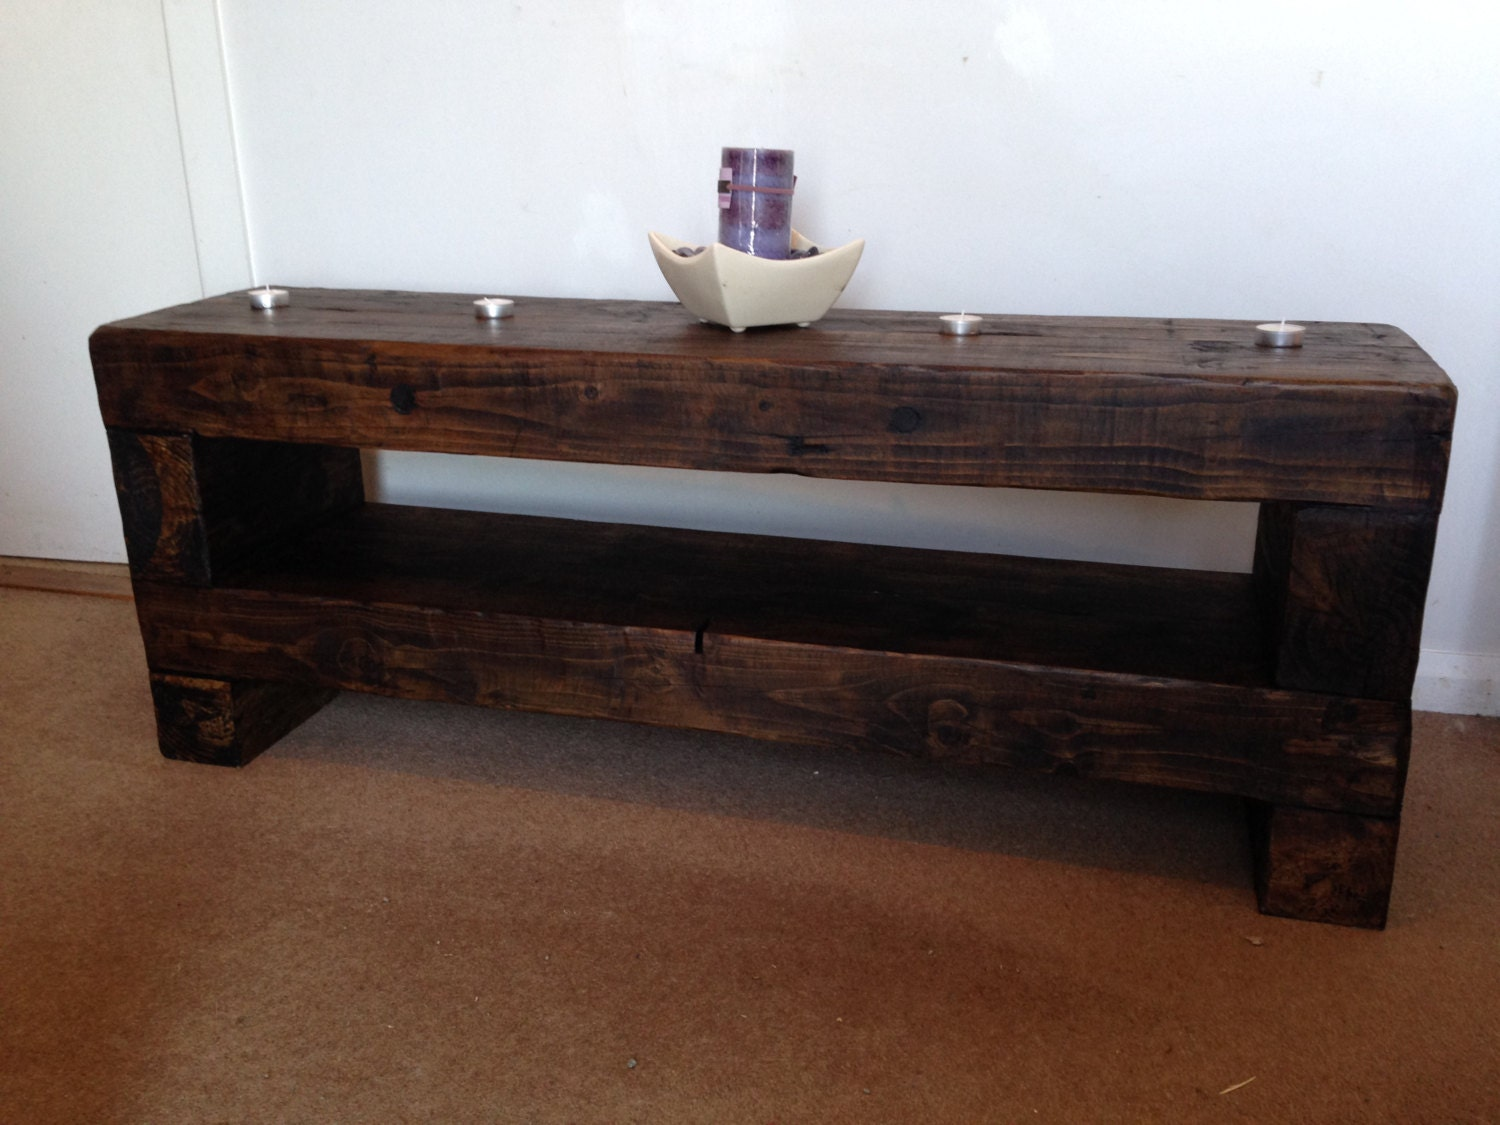 Image of 100 cm Tv stand rustic chunky lcd wooden